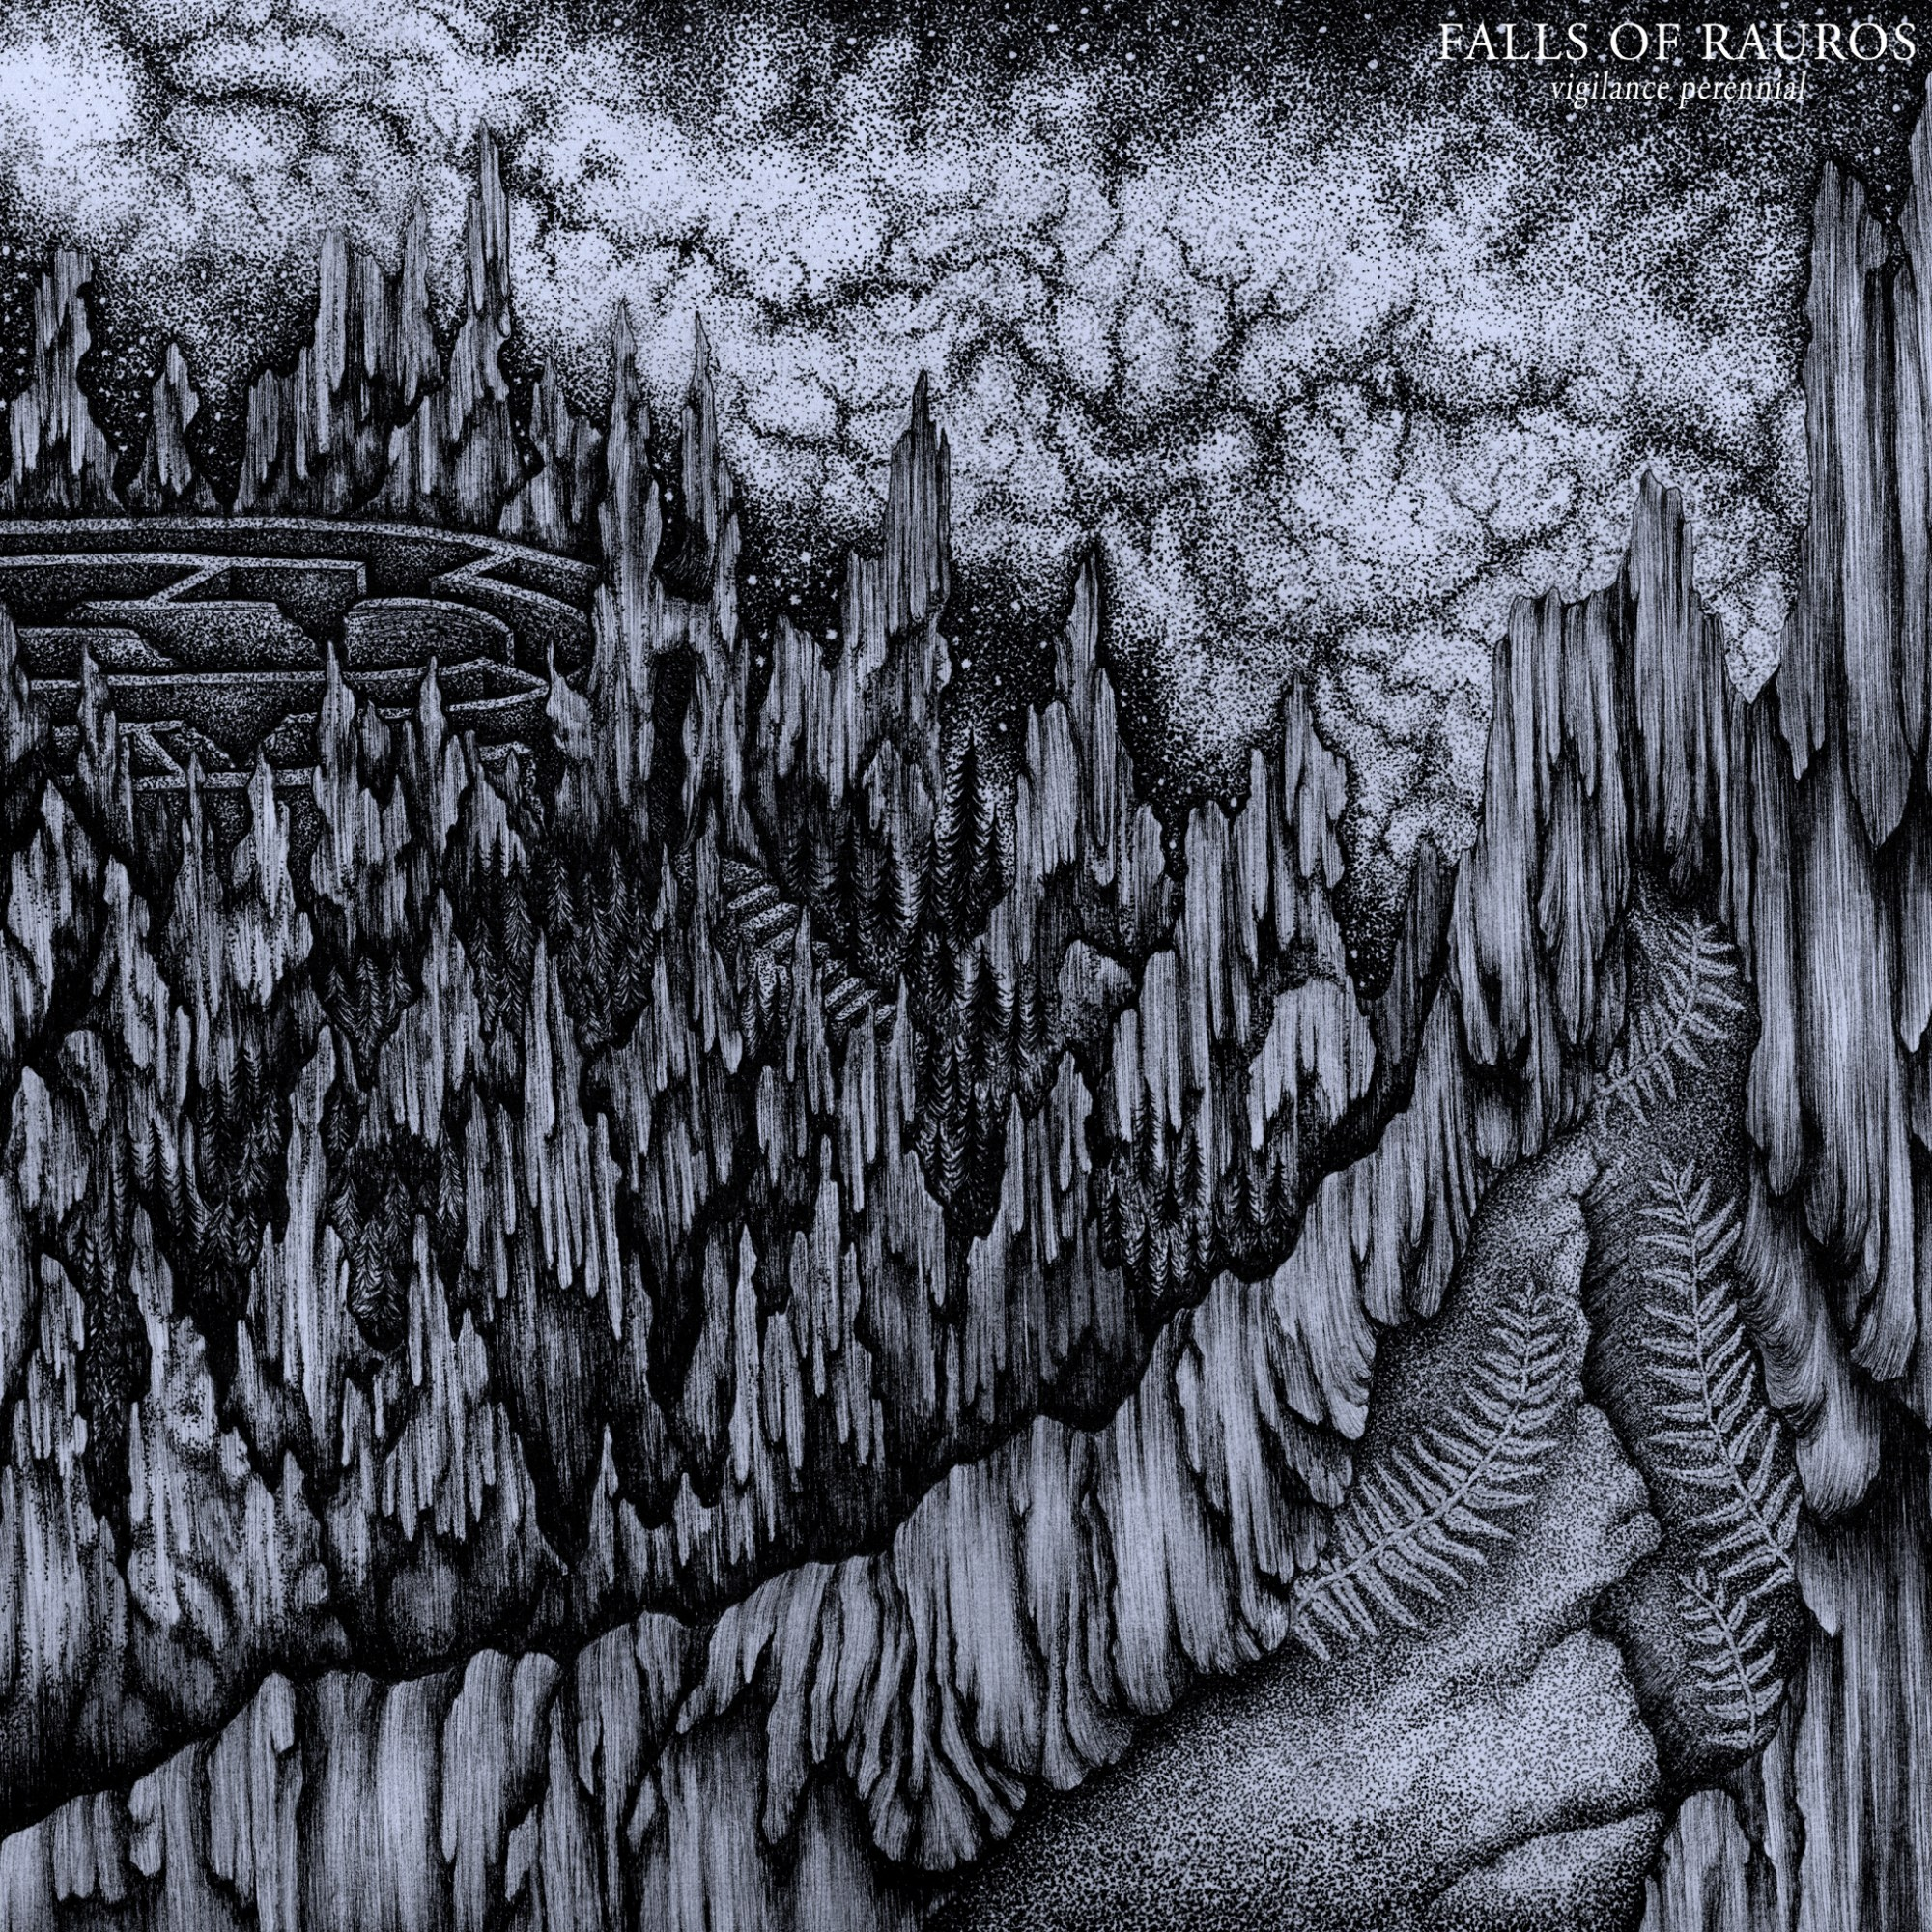 Review for Falls of Rauros - Vigilance Perennial